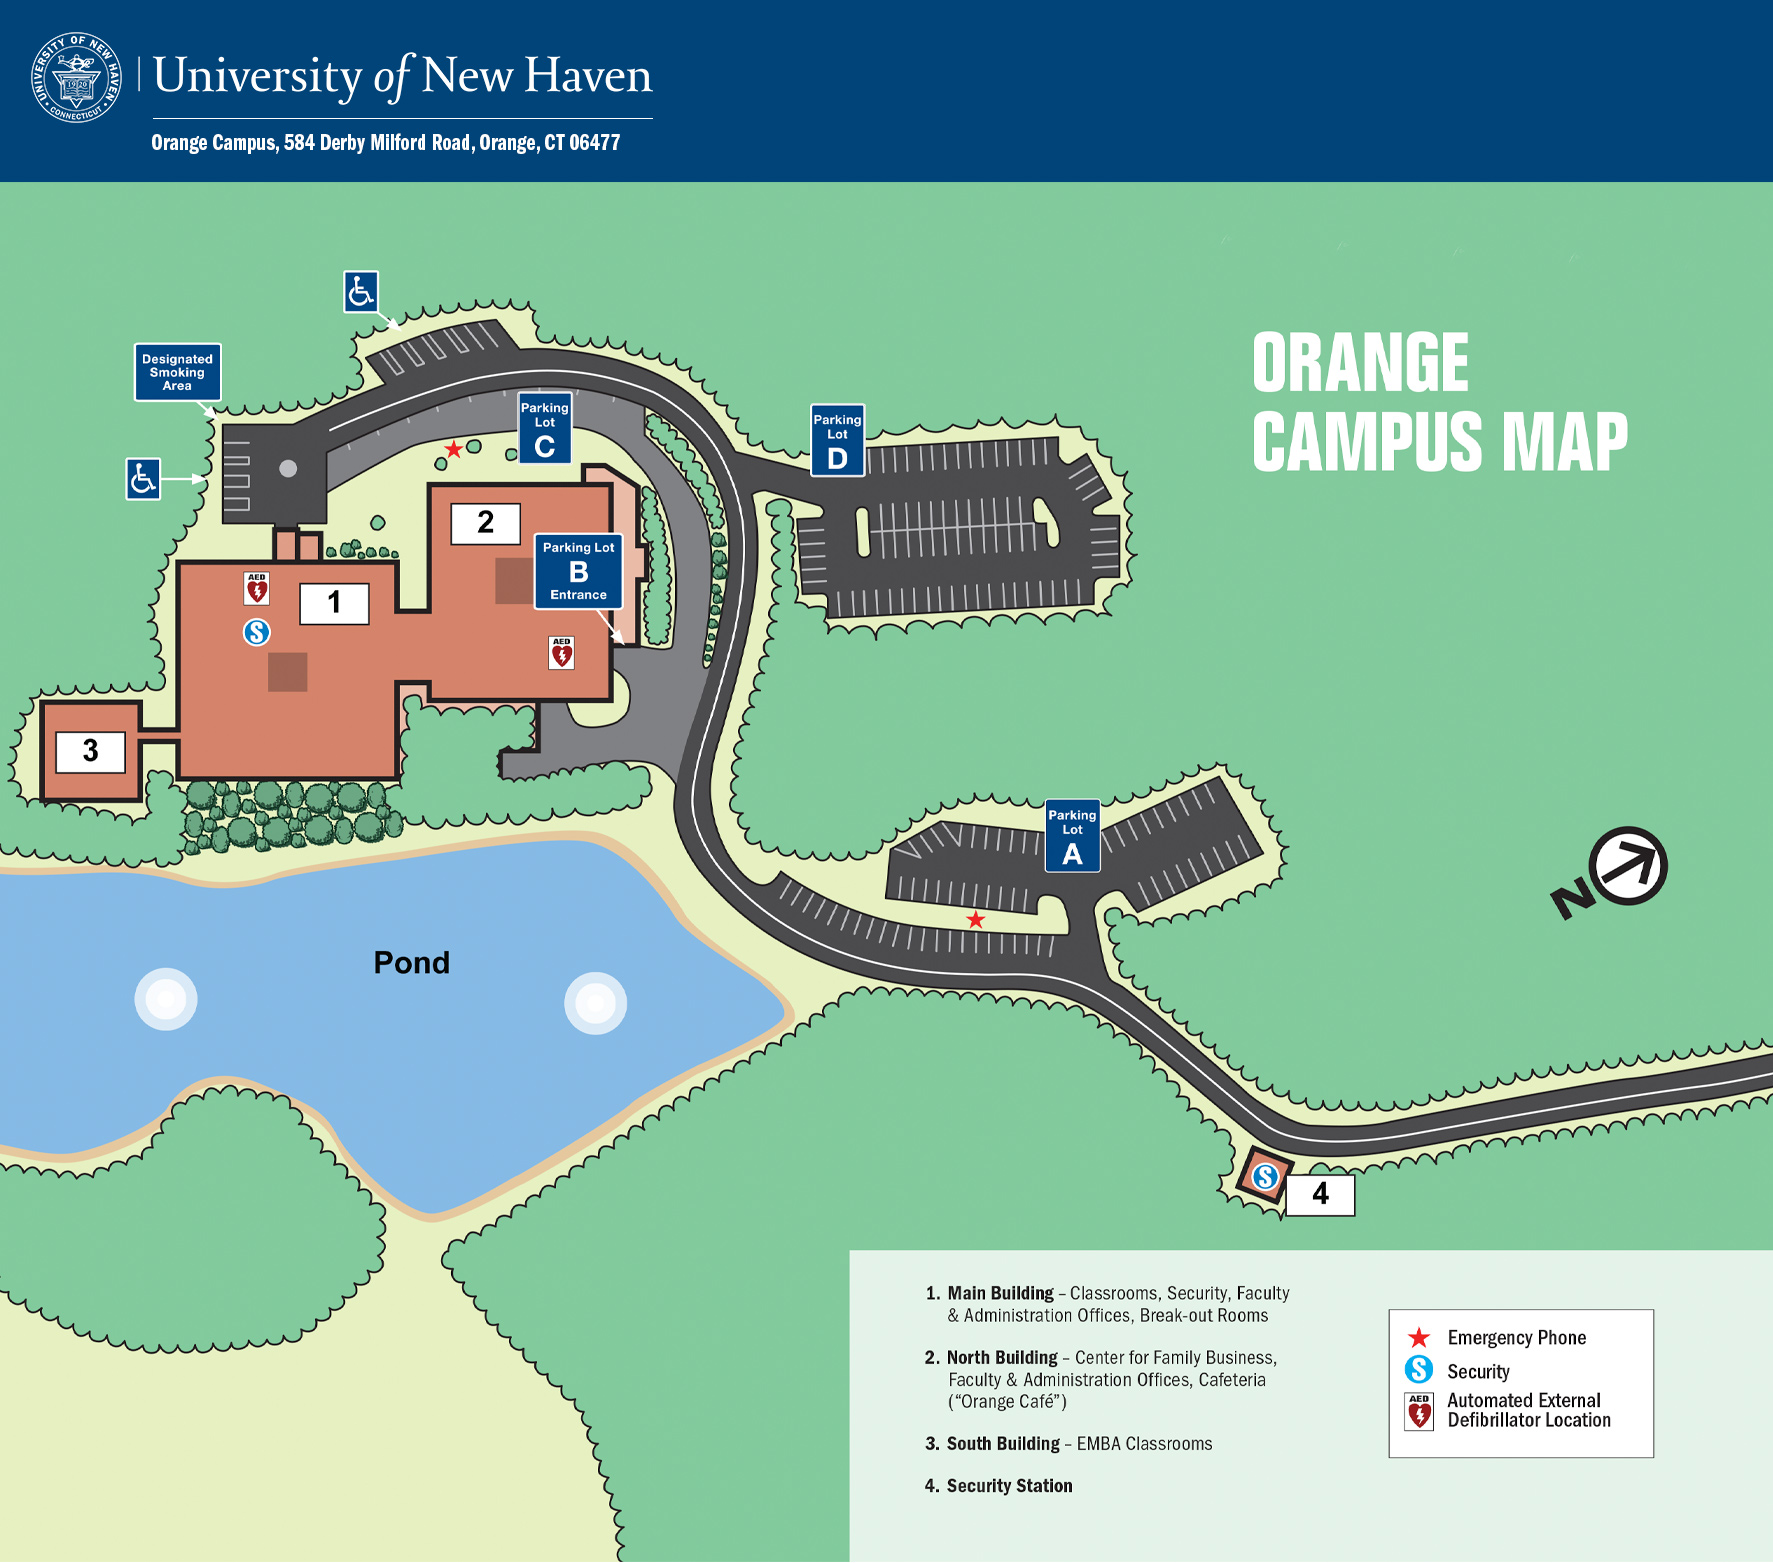 Orange Campus Map